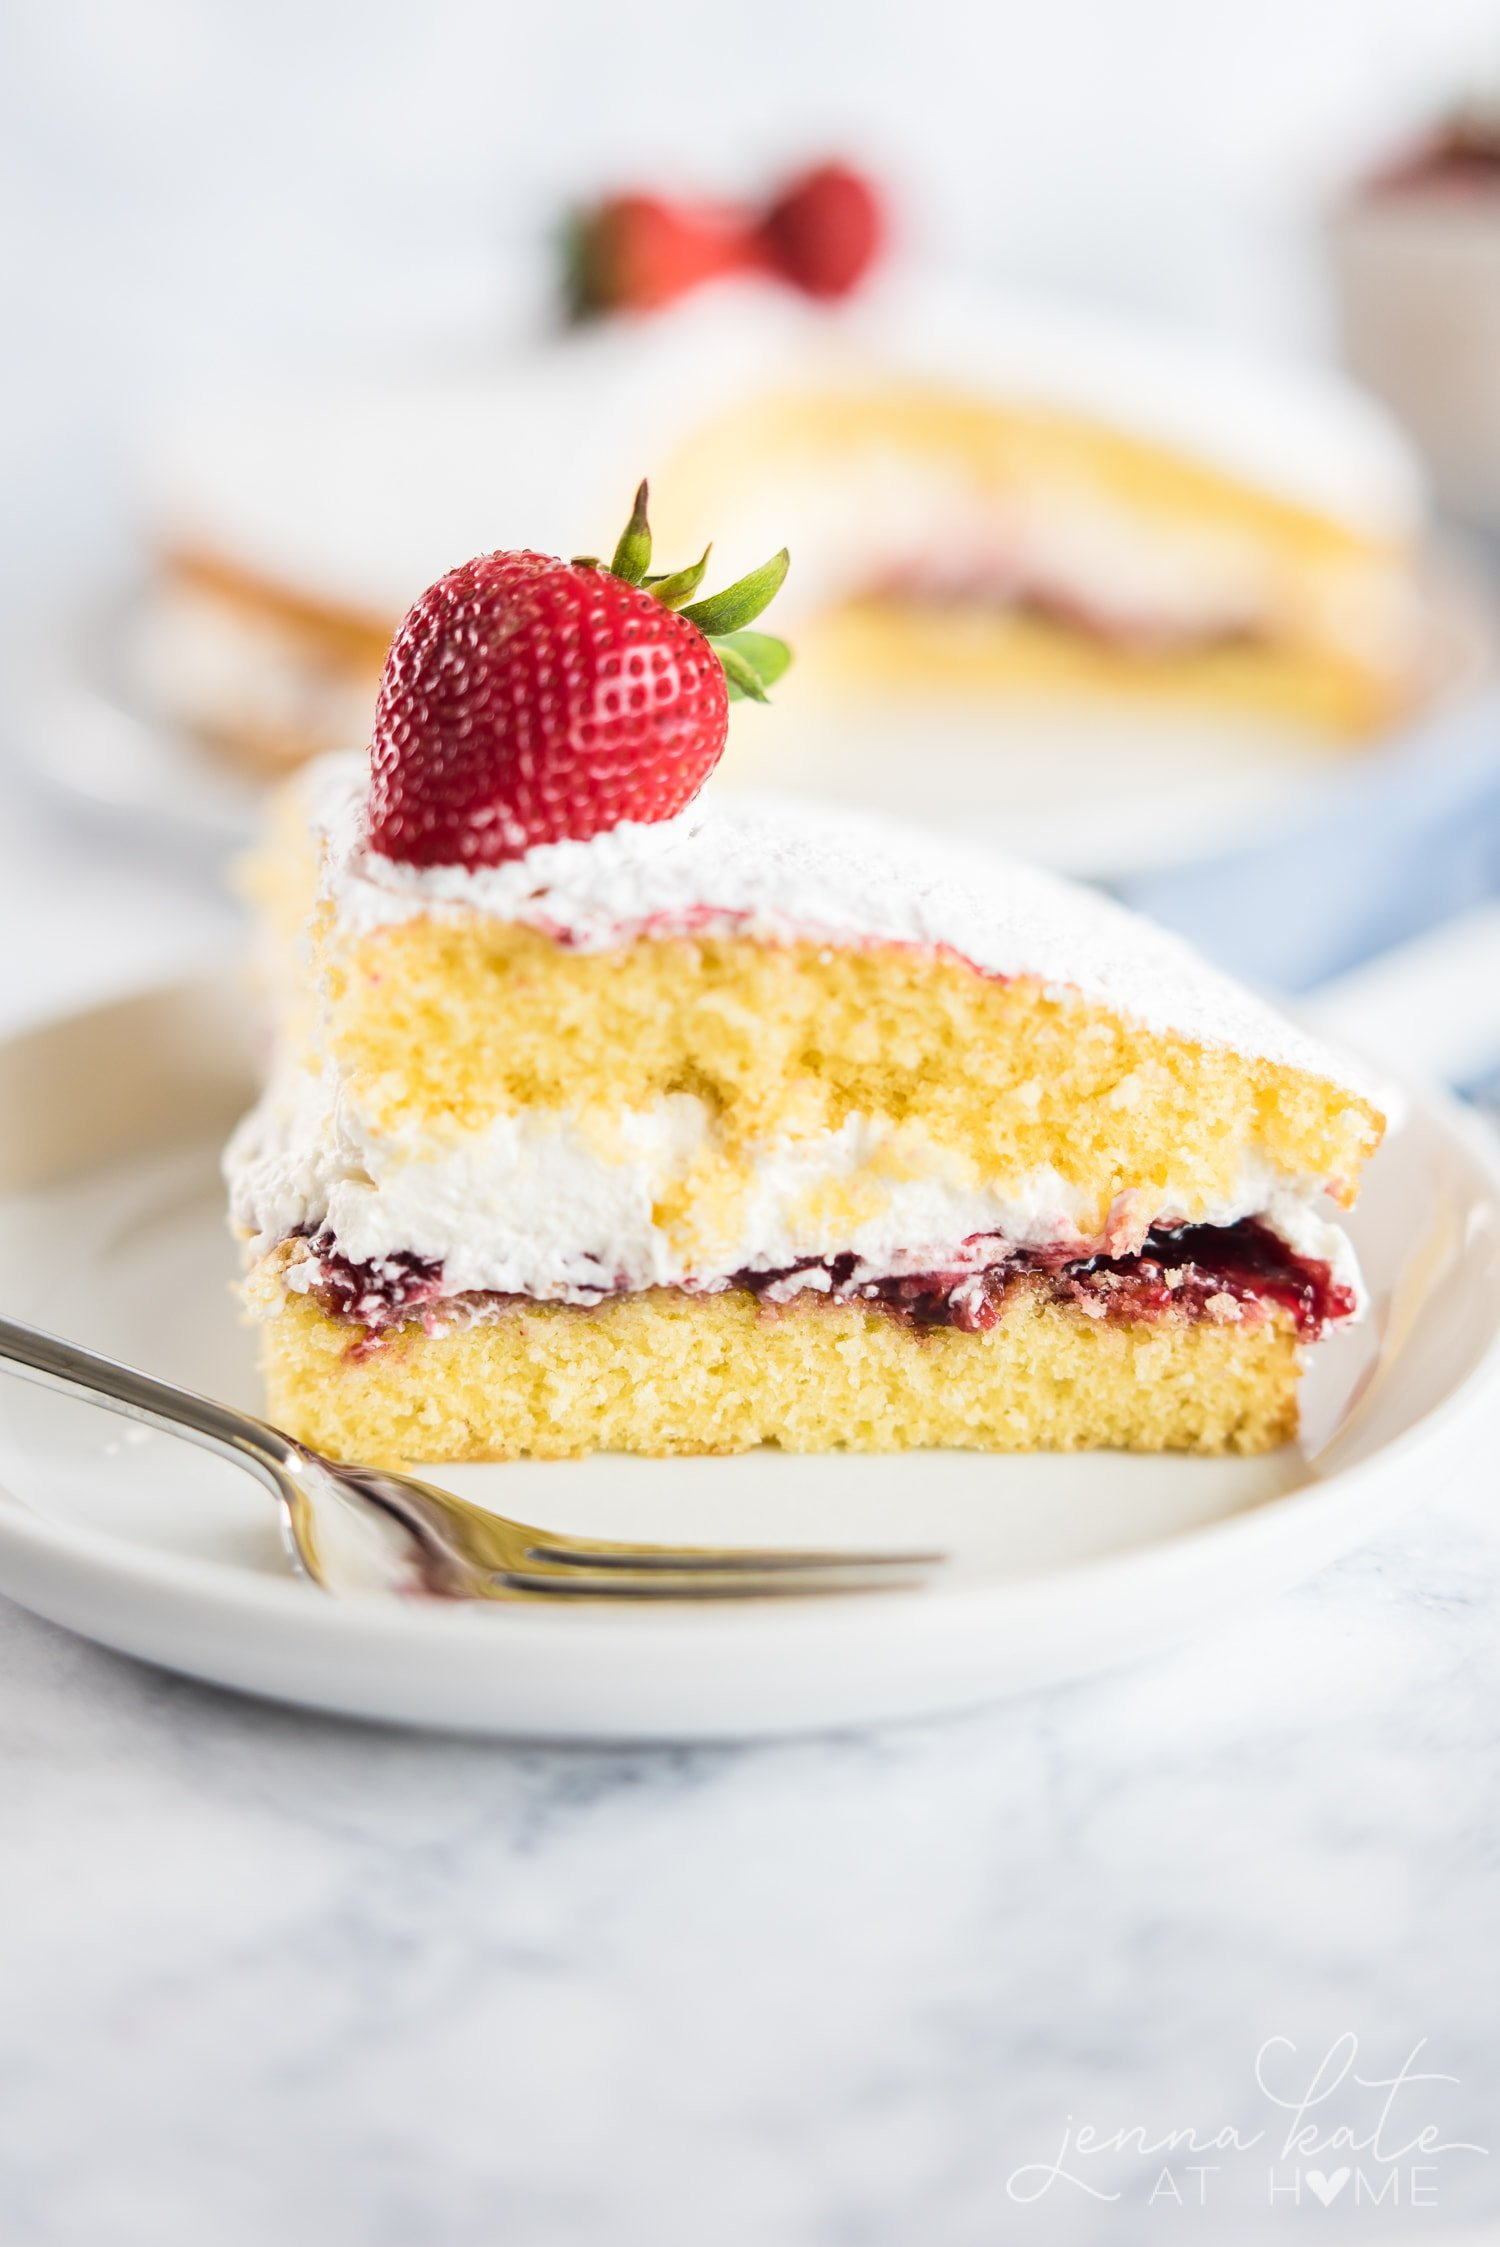 Slice of the cake where you can see the jam and cream filling